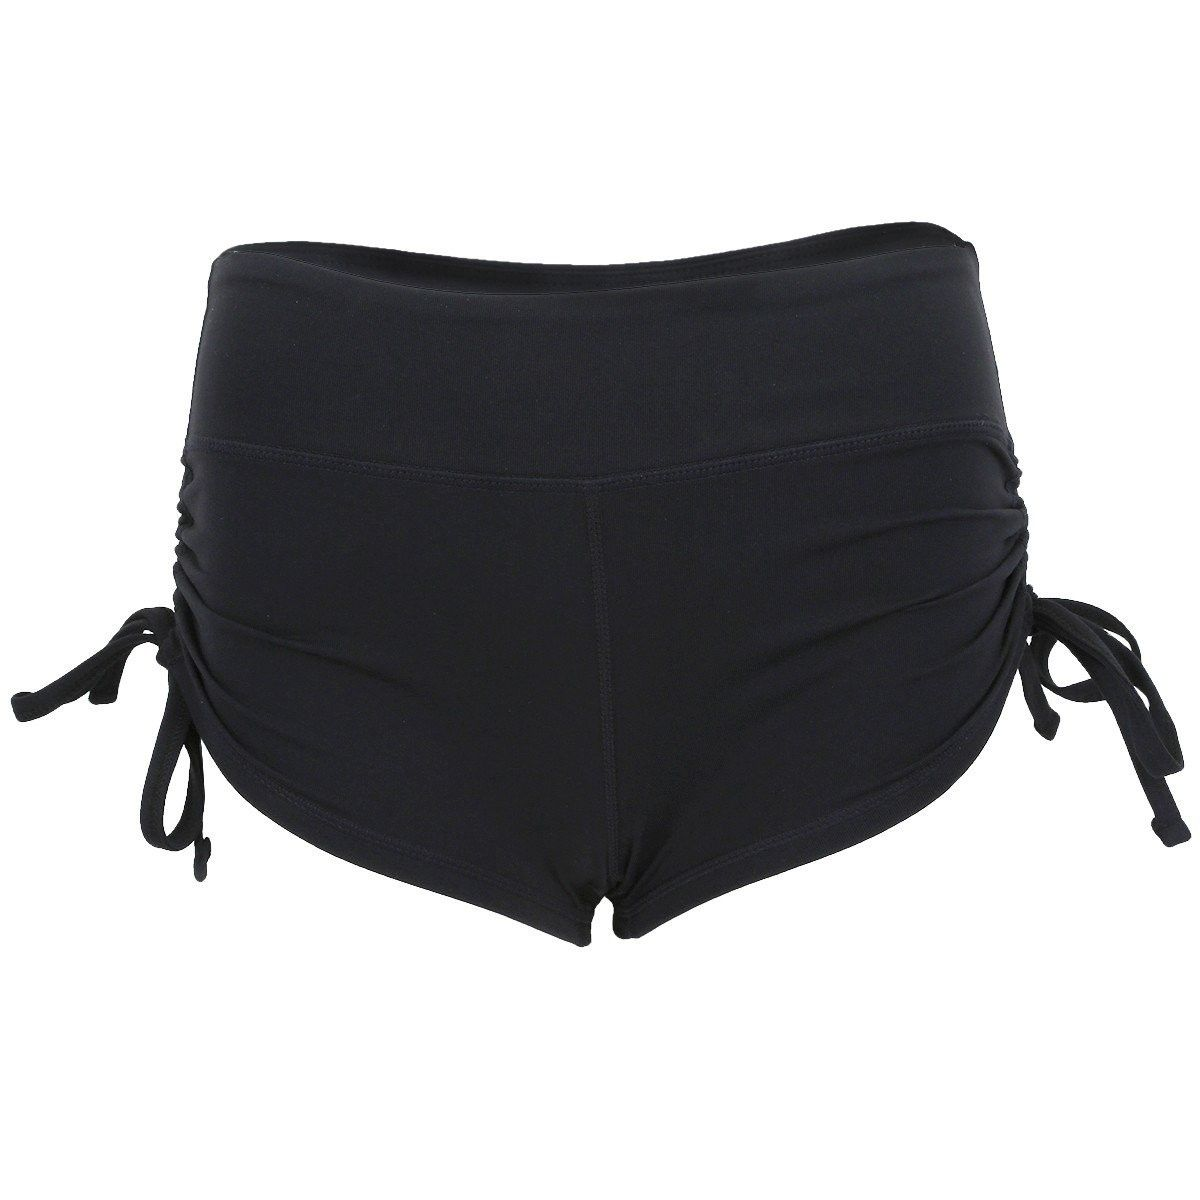 Yoga Shorts for Women - Activewear Exercise Fitness Gym Workout Athletic Running Jogging Shorts - Bl...